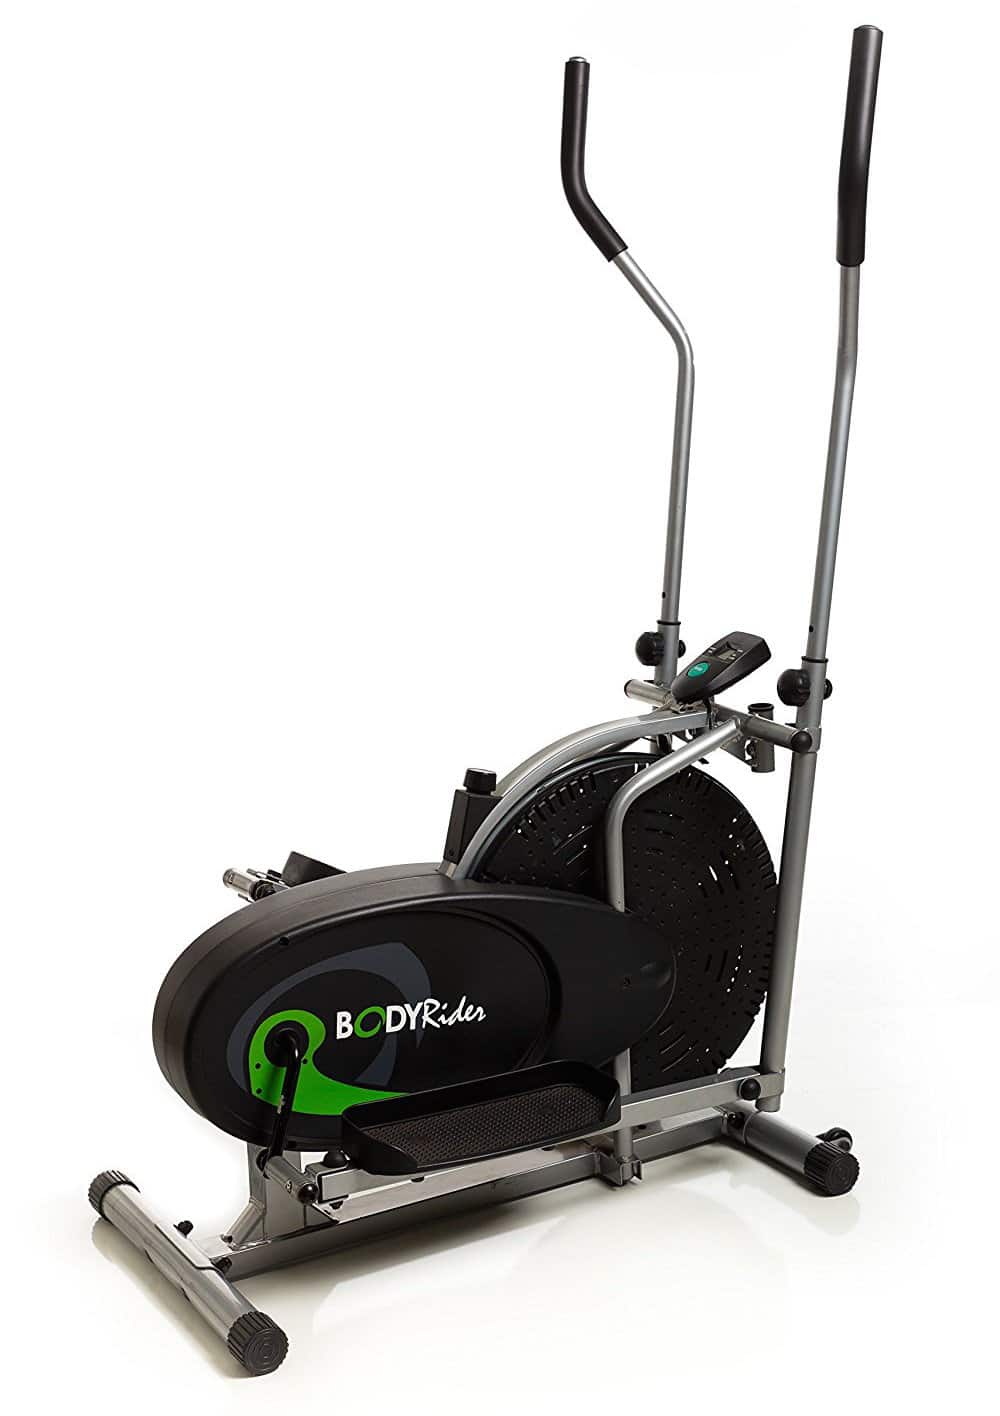 Body Rider BR1830 Fan Elliptical Trainer Review